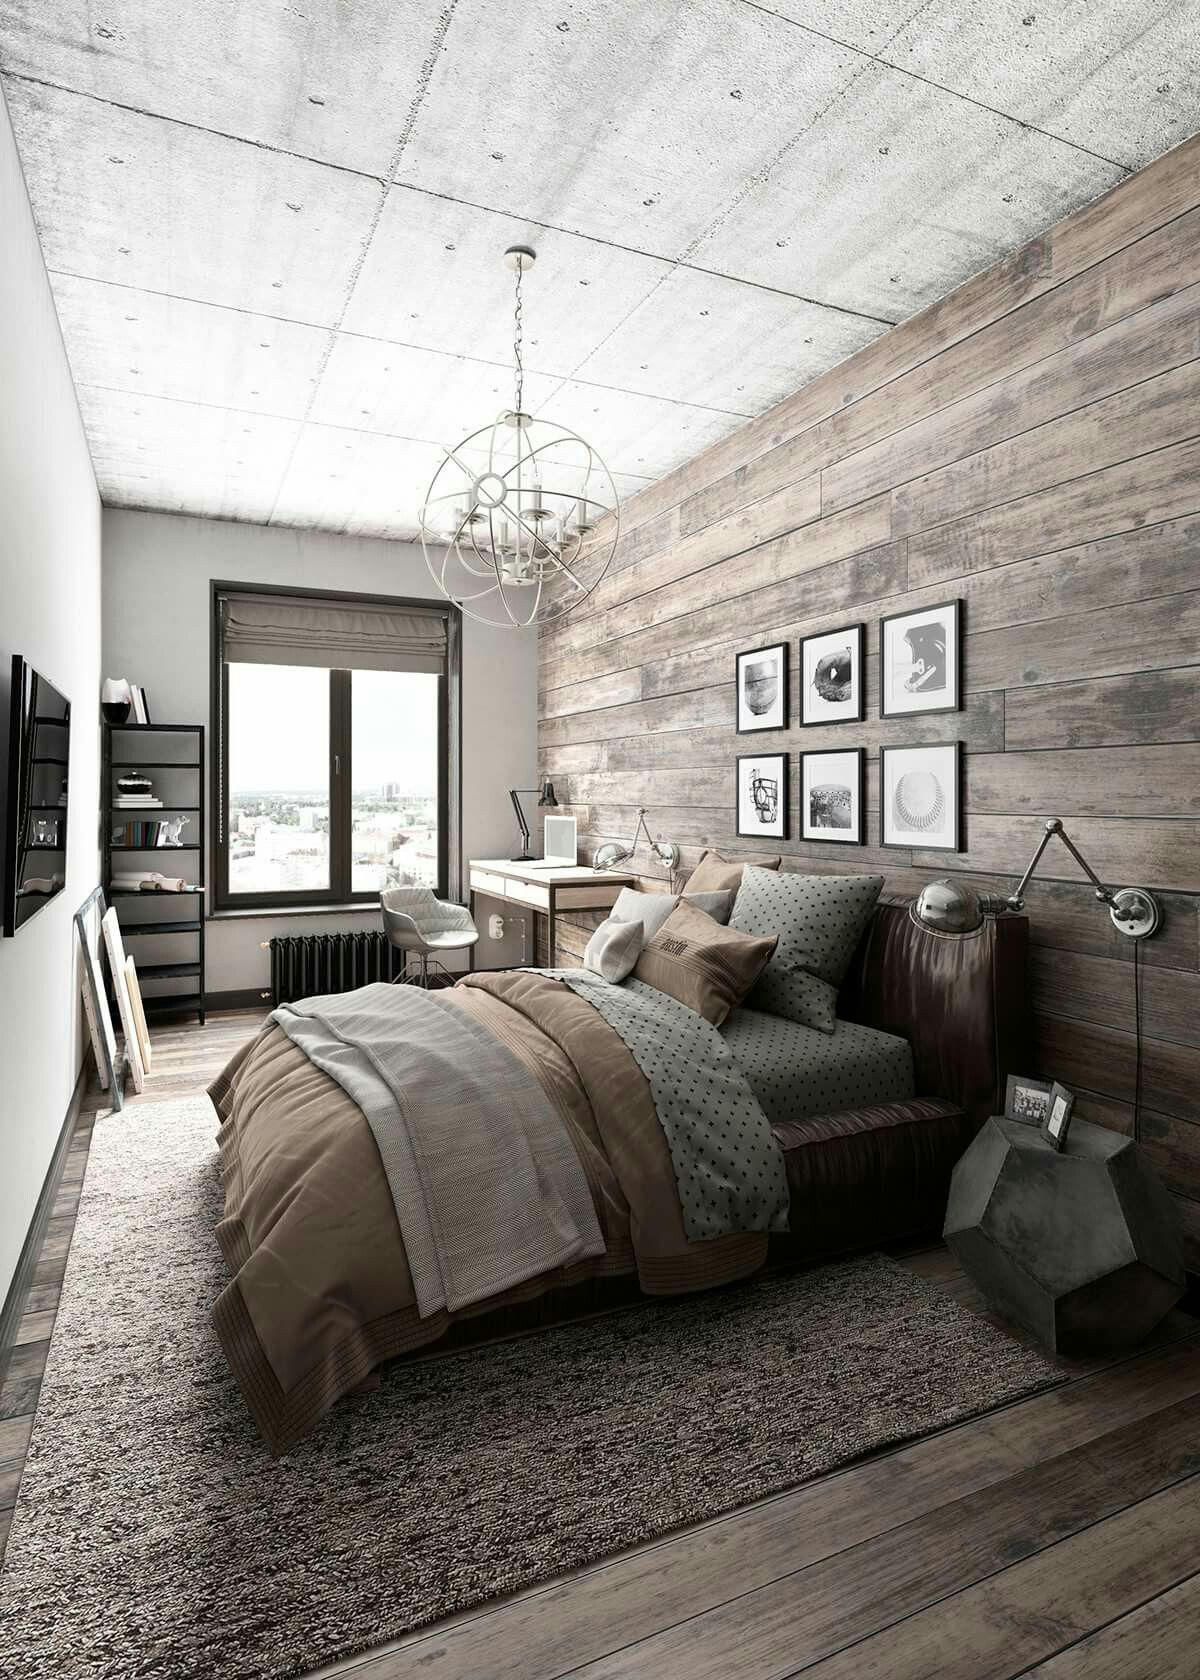 100 best chambre images on Pinterest